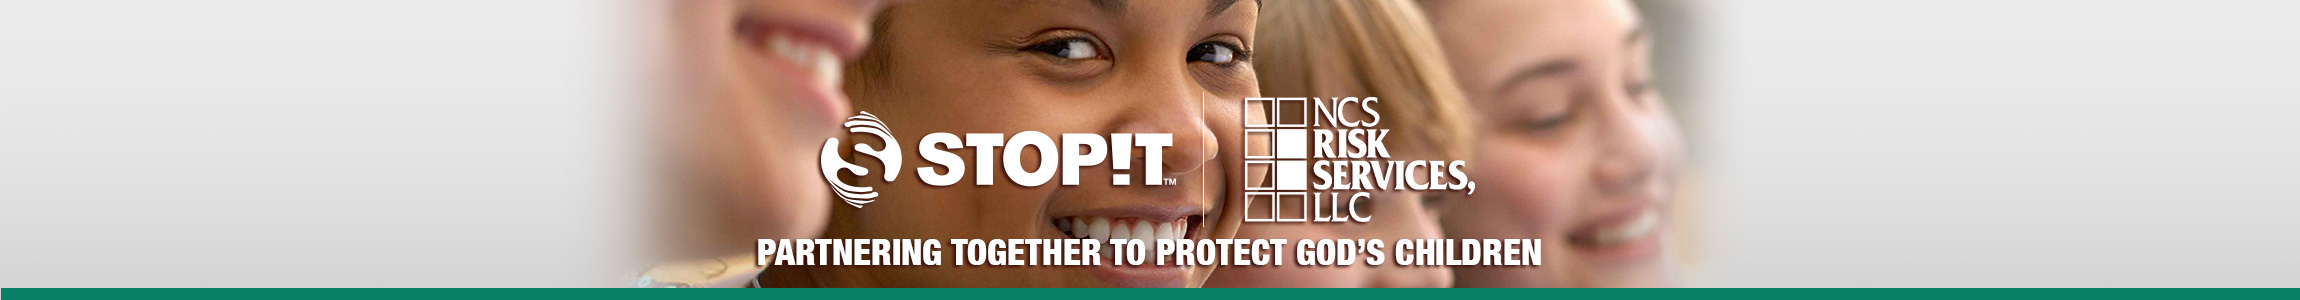 National Catholic Risk Services and STOPit, partnering together to protect God's children